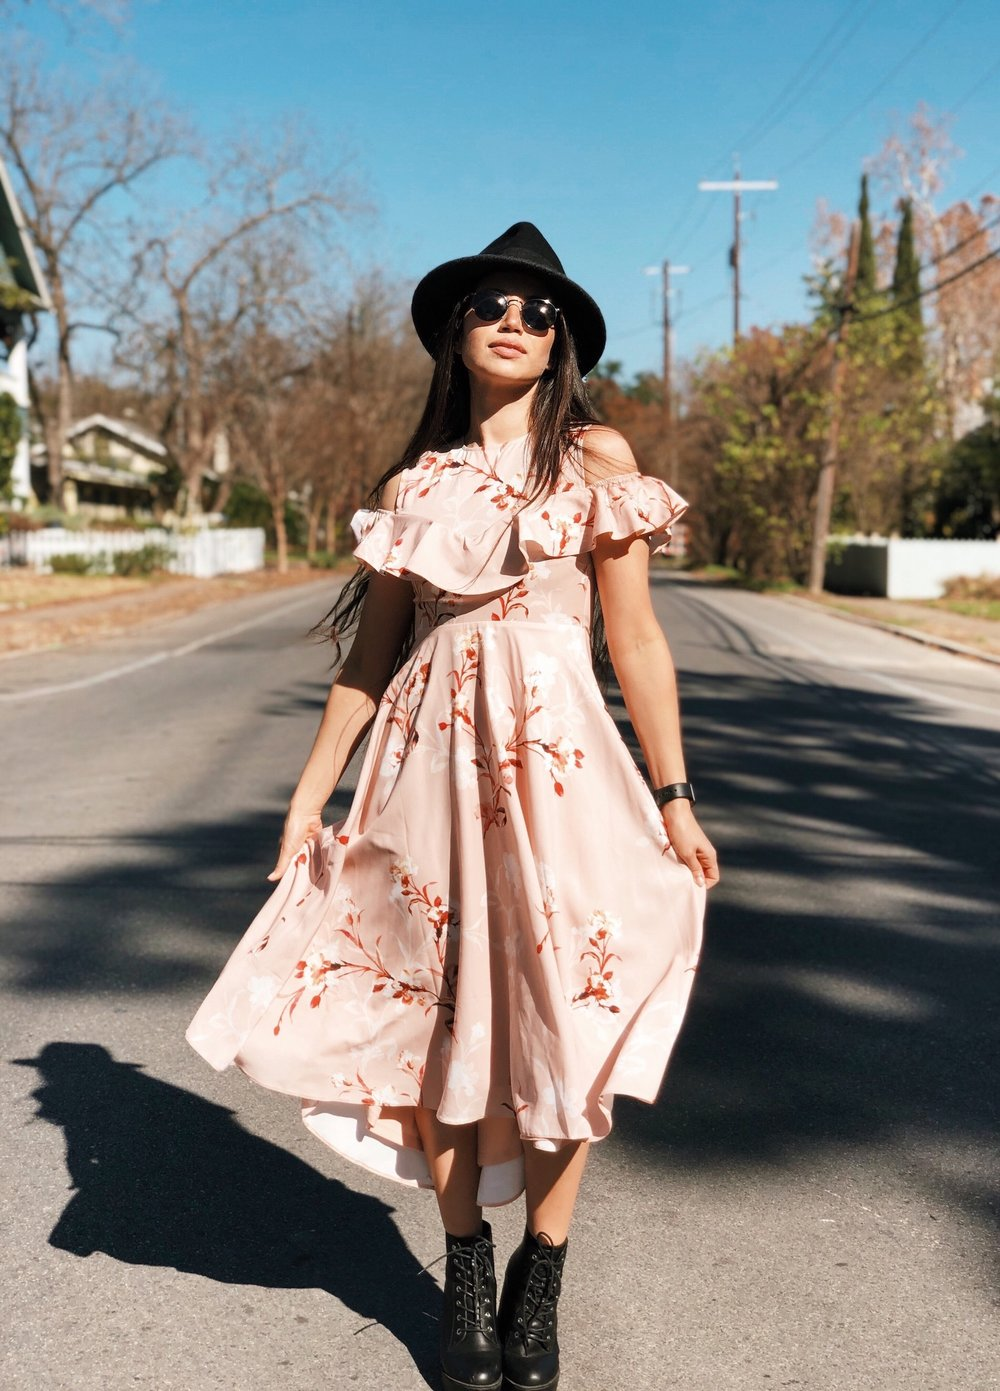 Pink dress with combat boots - A Week Of Cruelty-Free Outfits & Vegan Beauty With Jessica Salazar From All There August on The Good Trade